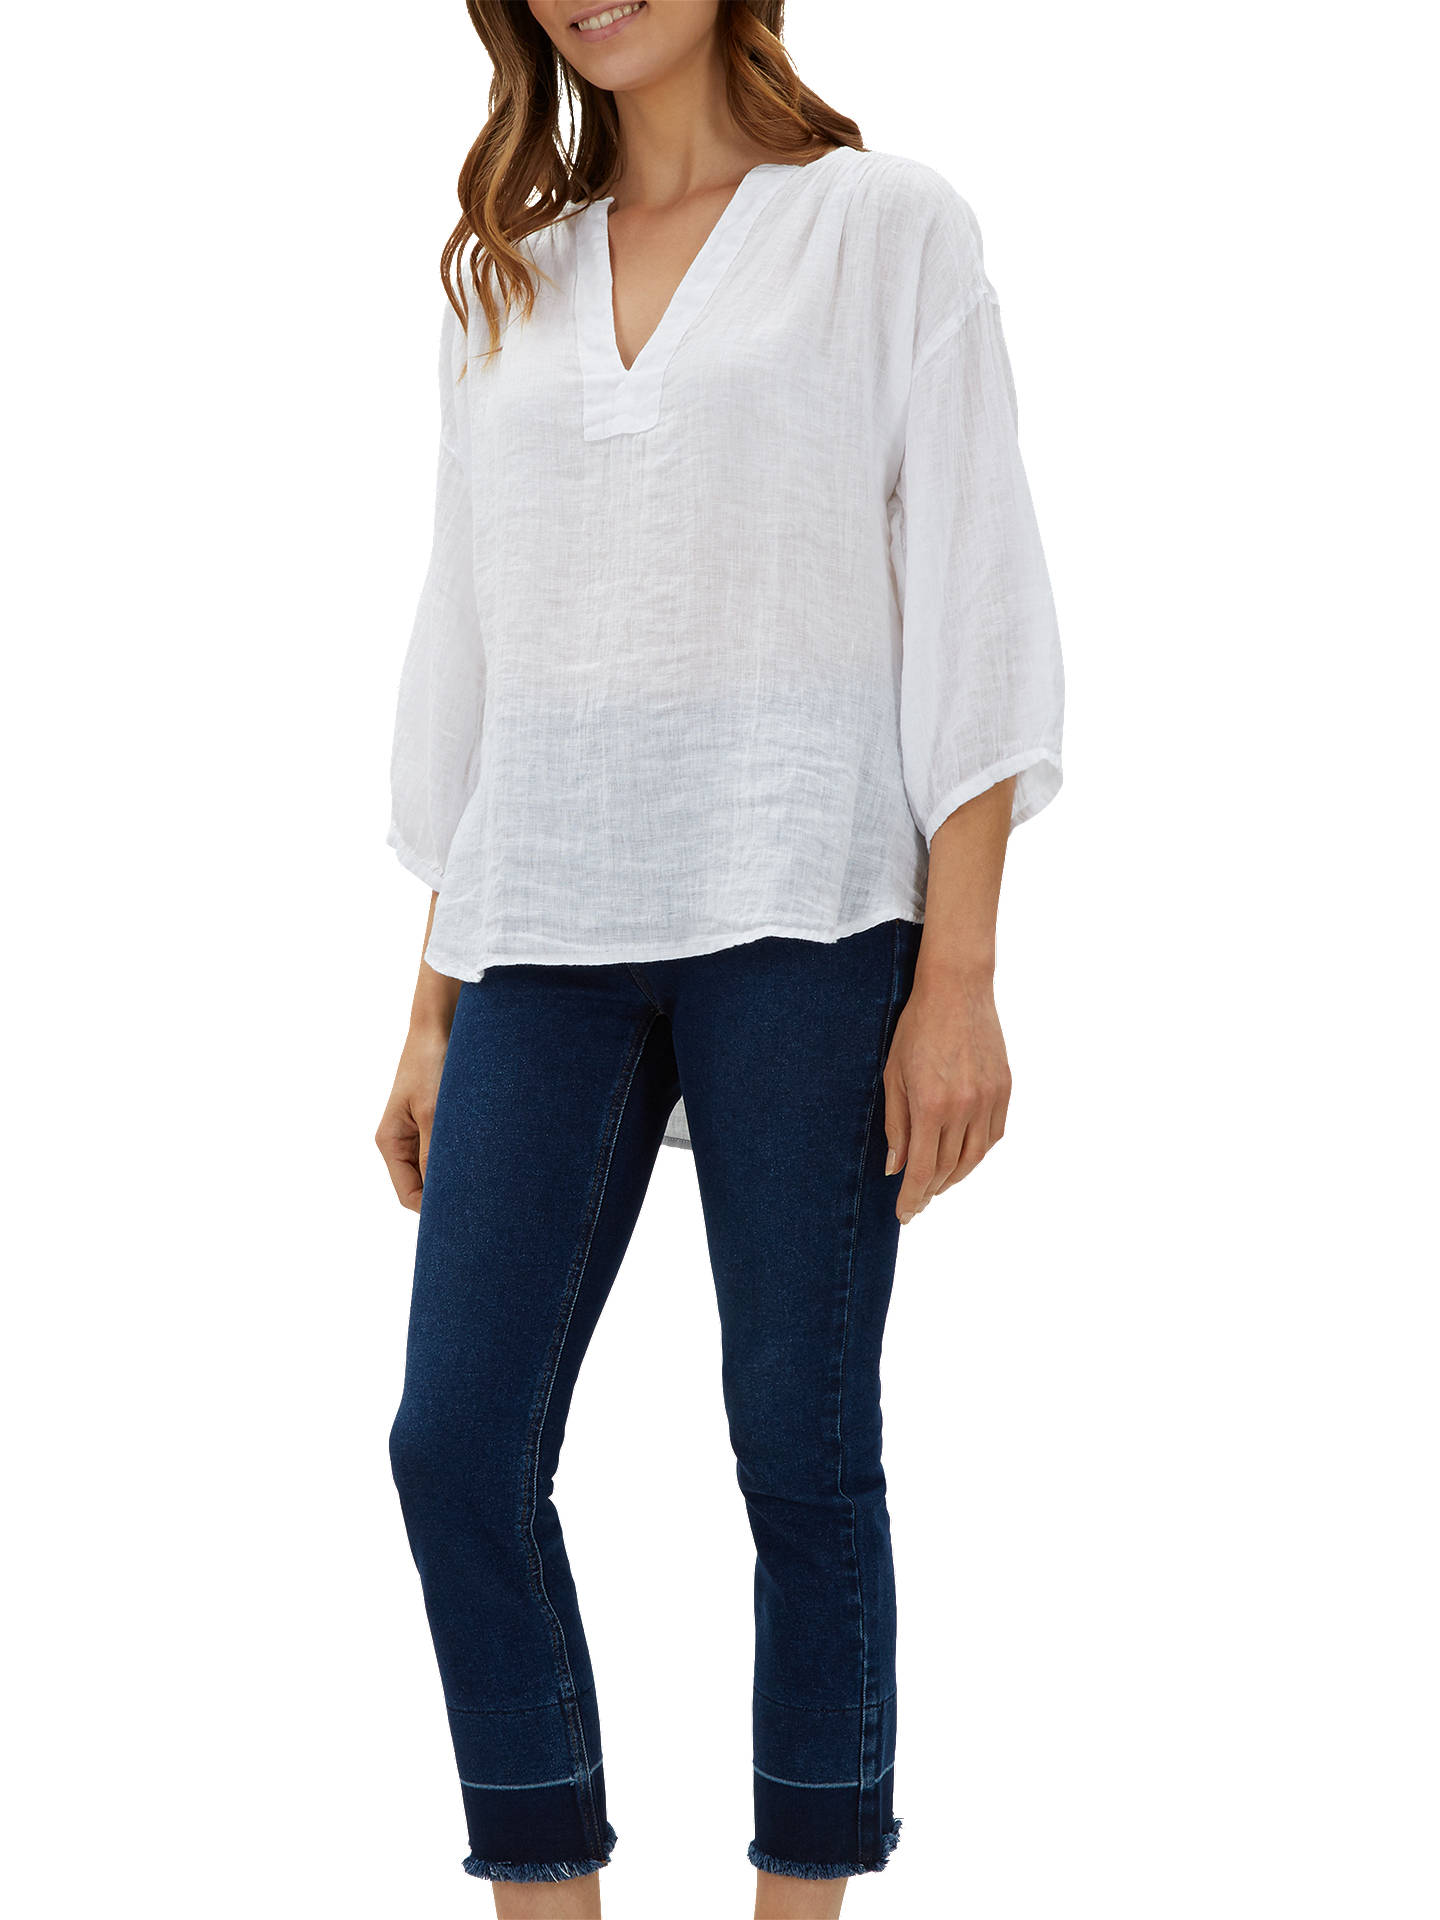 681ae284f9e ... Buy Jaeger Gauze Linen Tunic Top, White, 10 Online at johnlewis.com ...